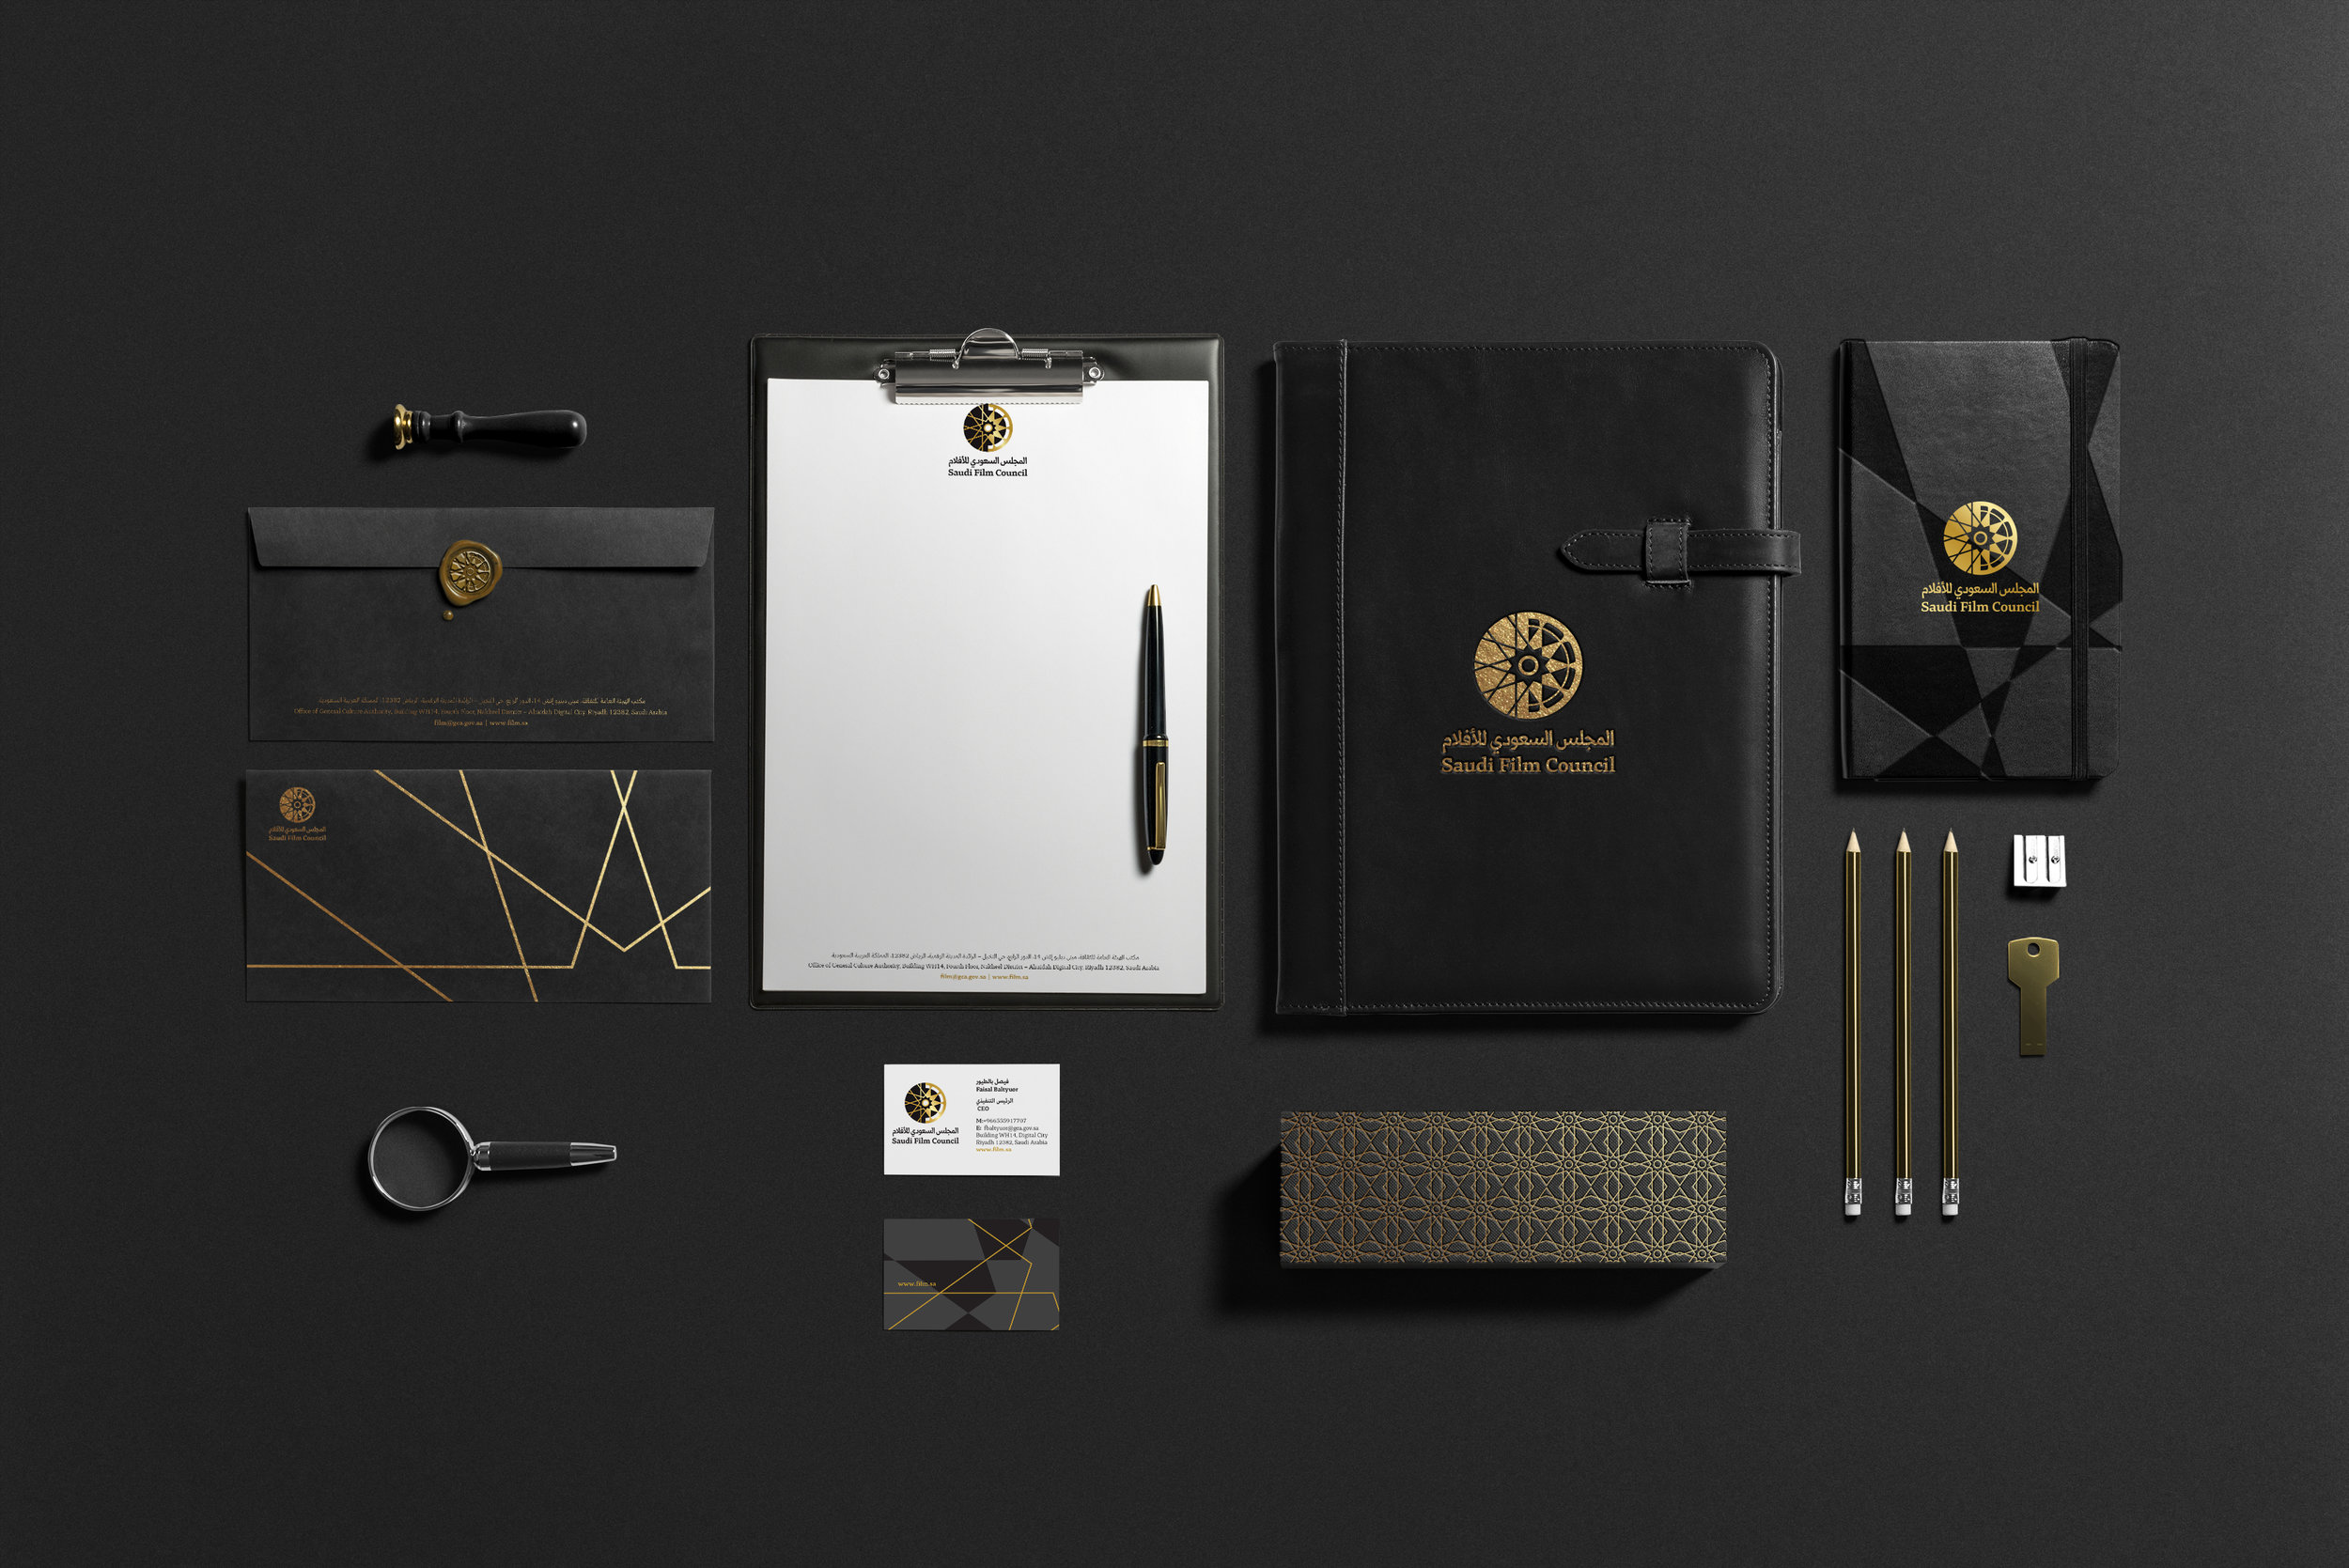 Kalian_Branding_Saudi_Film_Council_Stationery.jpg